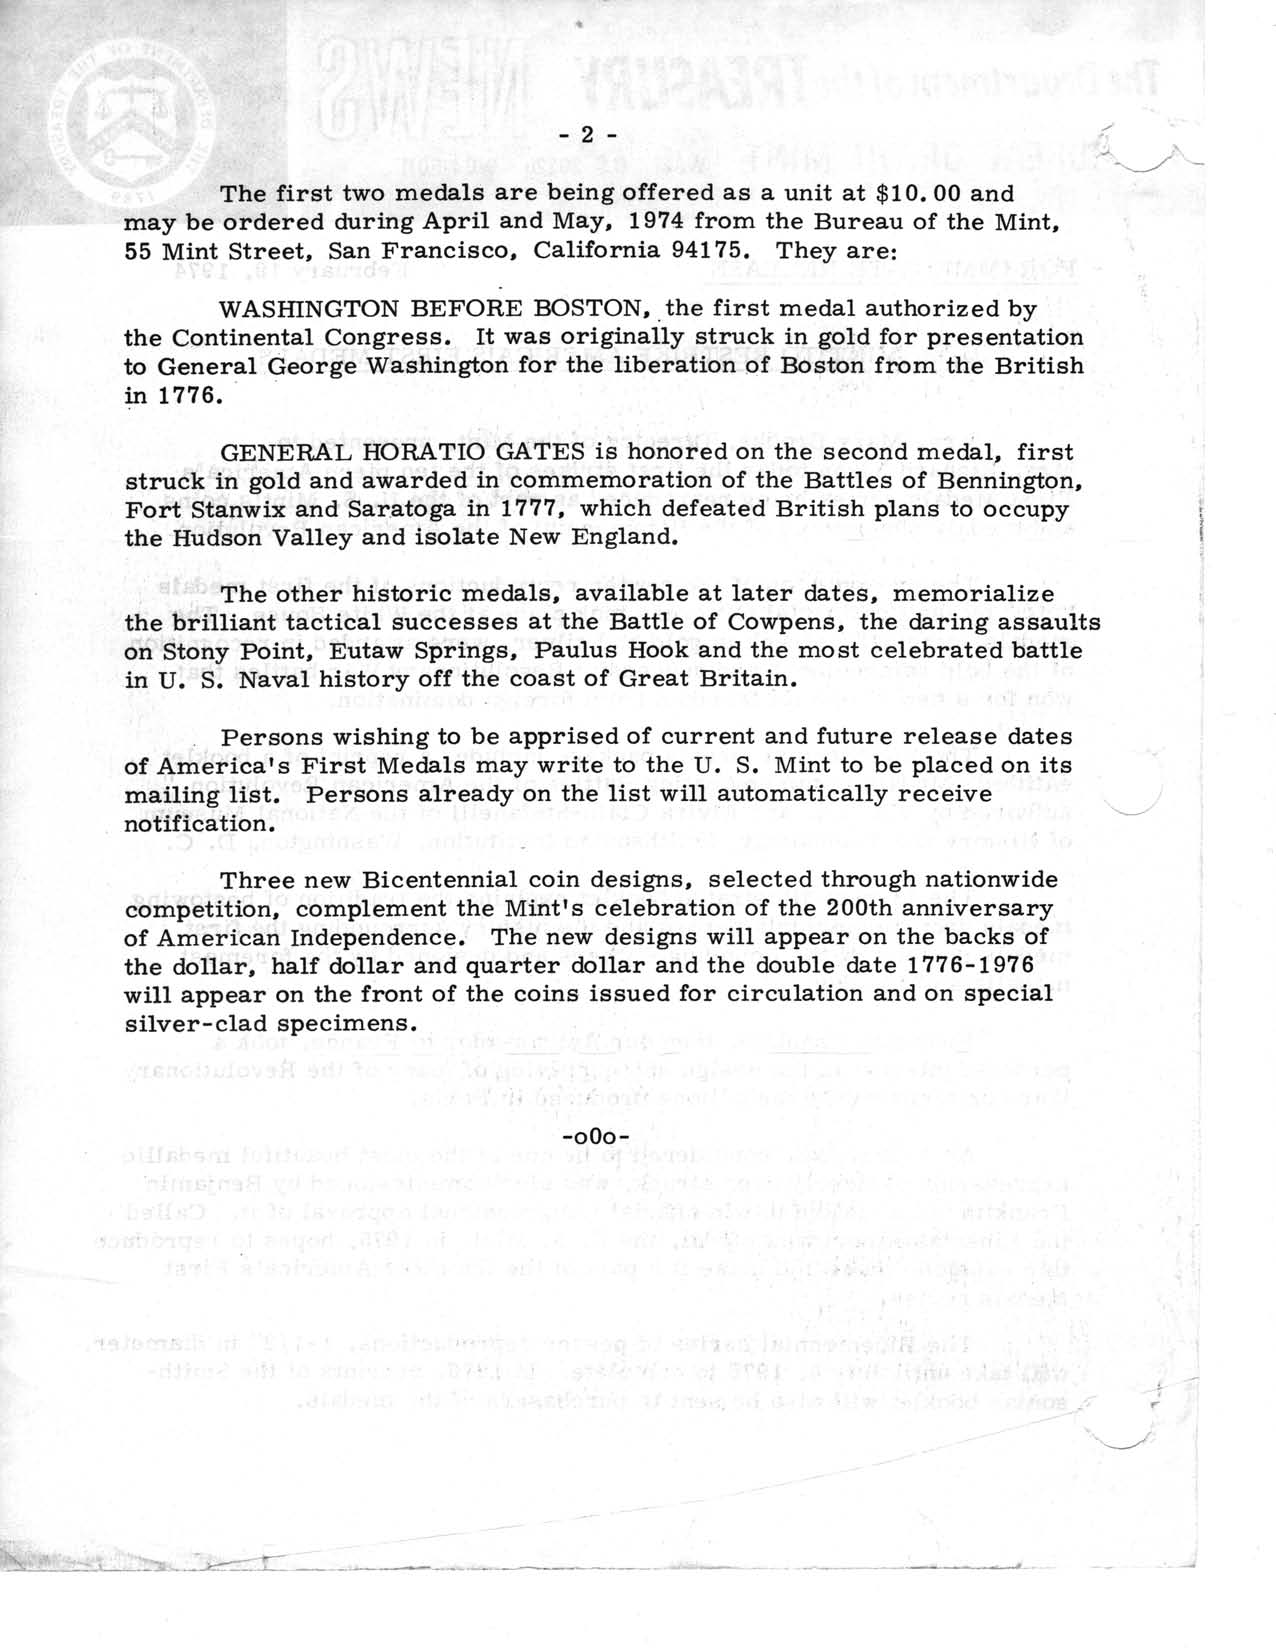 Historic Press Release: Restrike of America's First Medals, Page 2